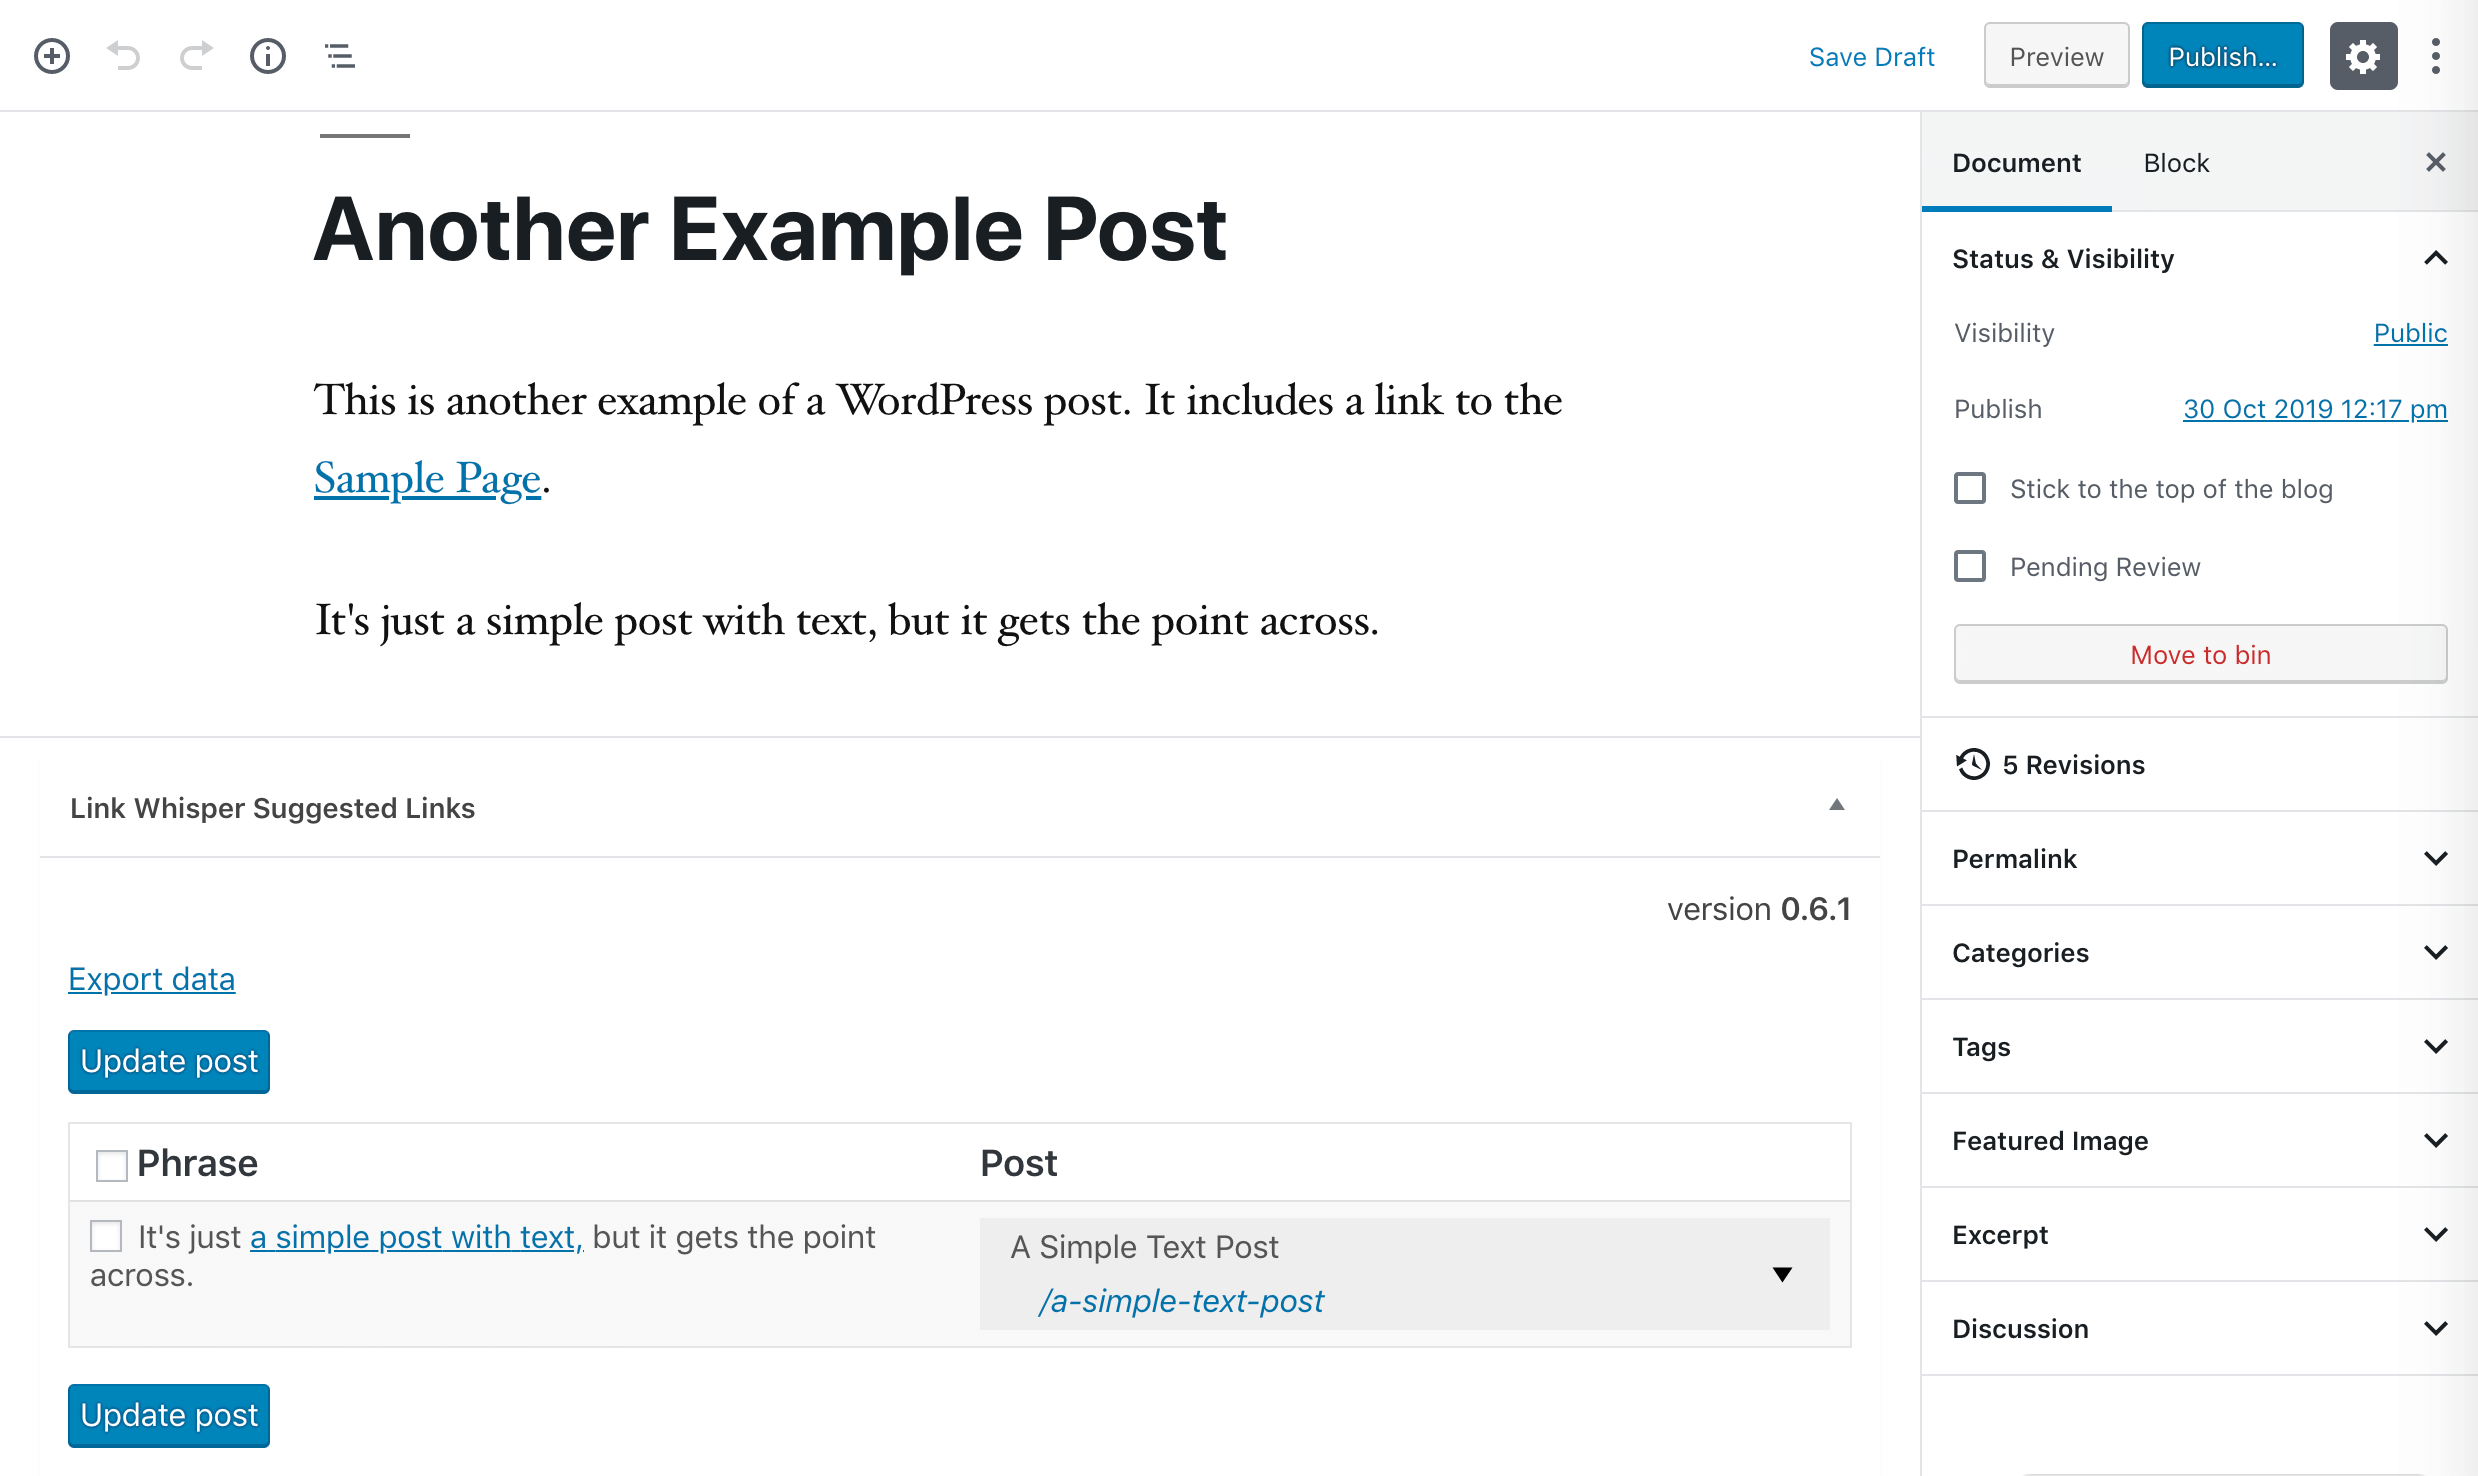 Adding outbound internal links in the WordPress editor using Link Whisper suggestions.